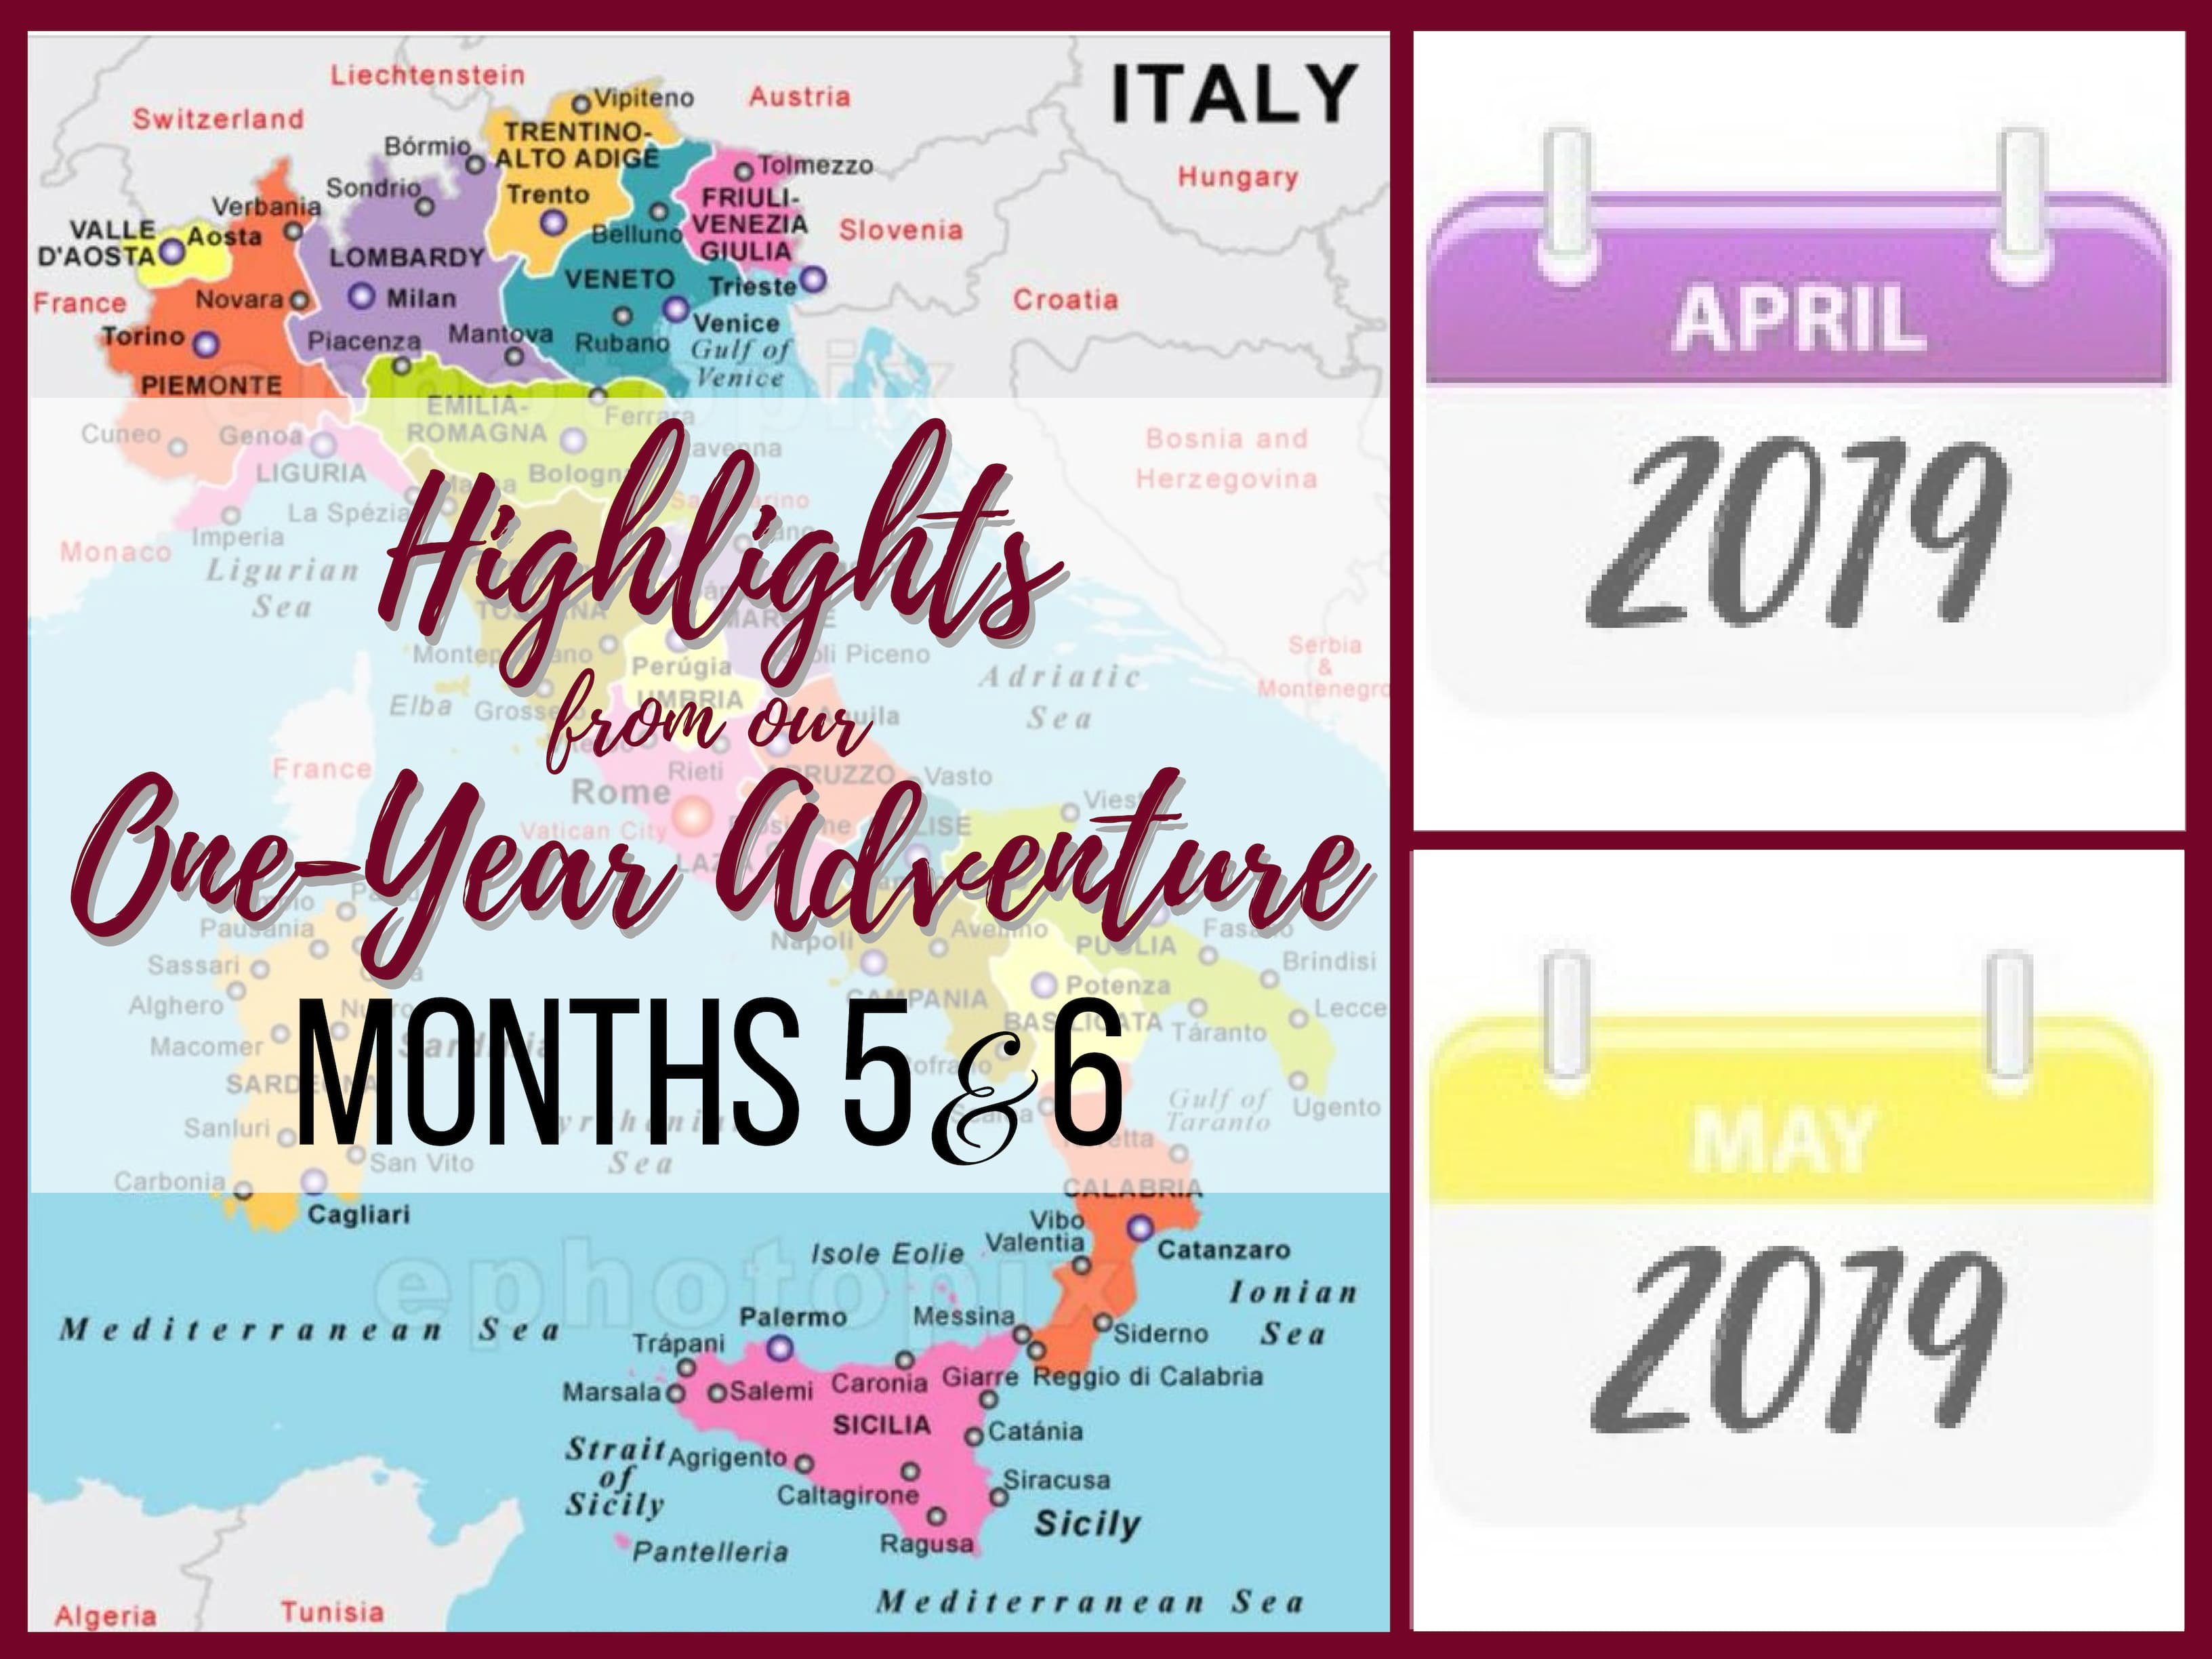 https://ouritalianjourney.com/months-5-6-1-year-adventure-in-italy